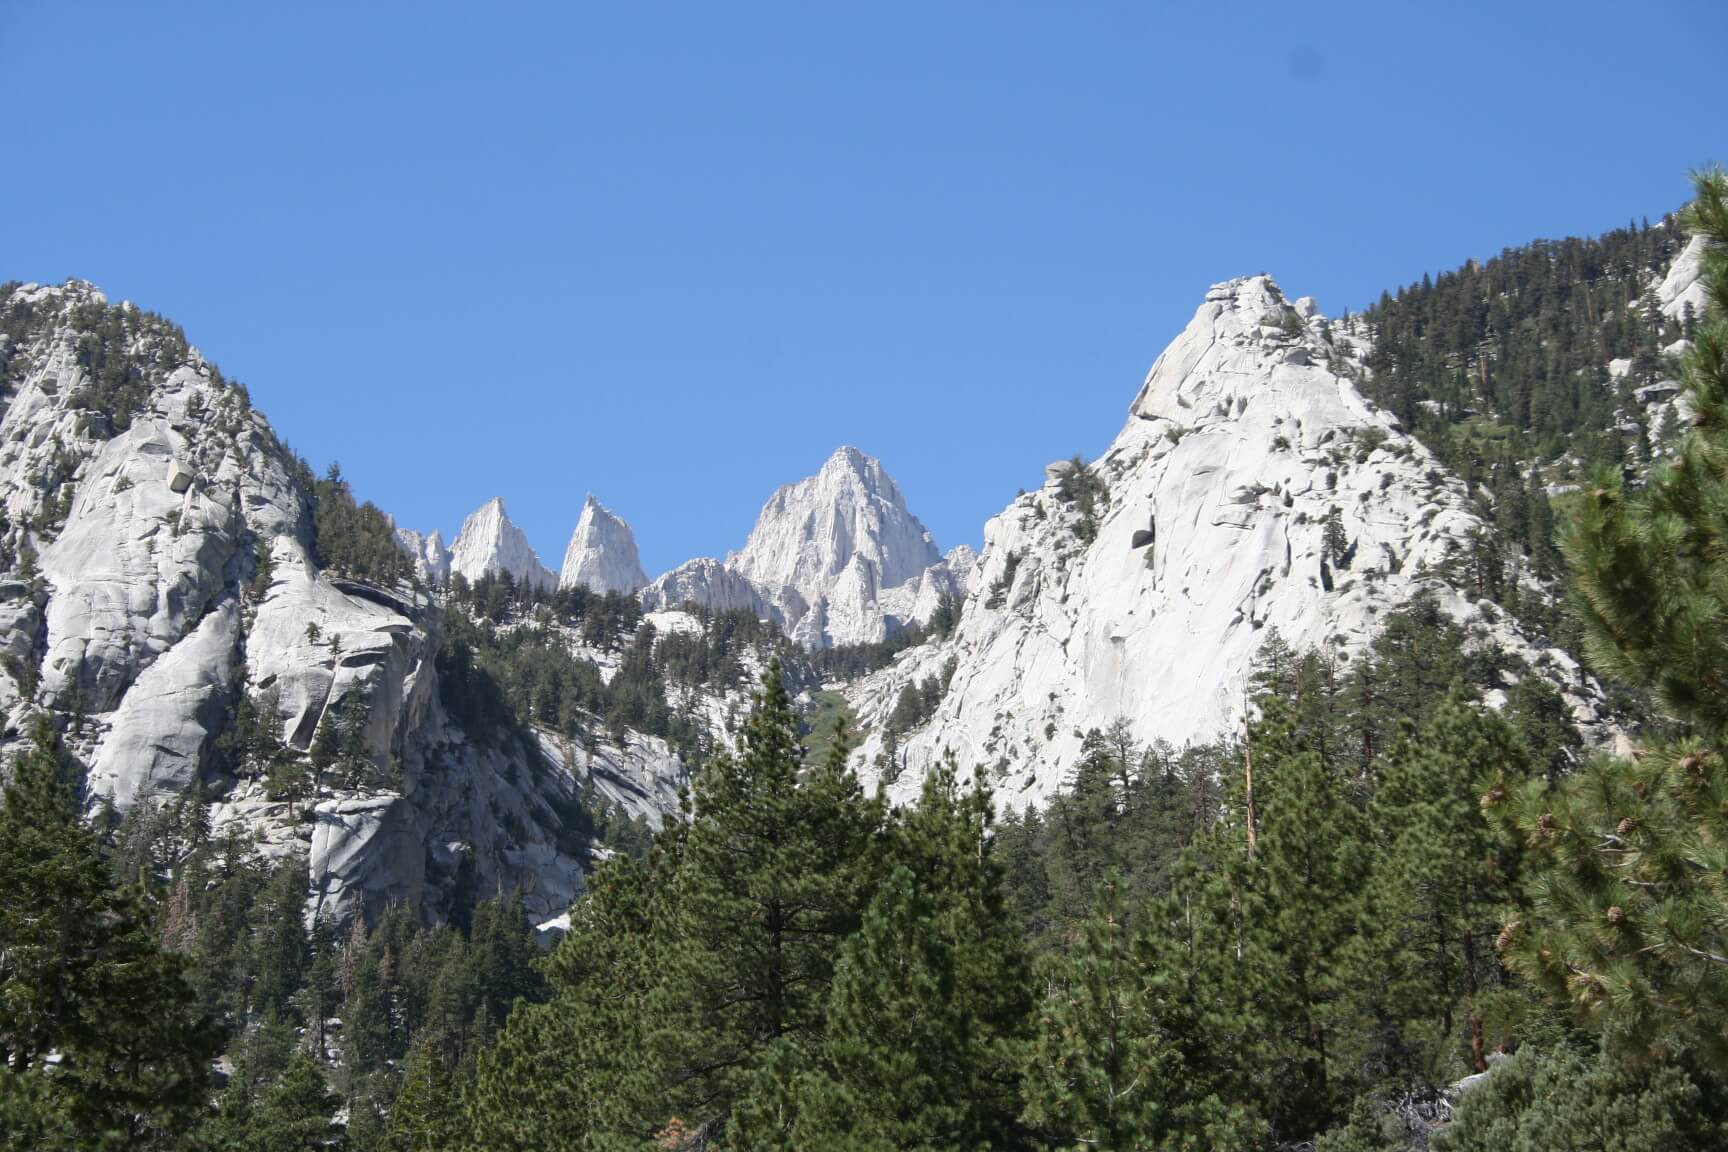 Inyo National Forest Campgrounds Closed - Mt. Whitney